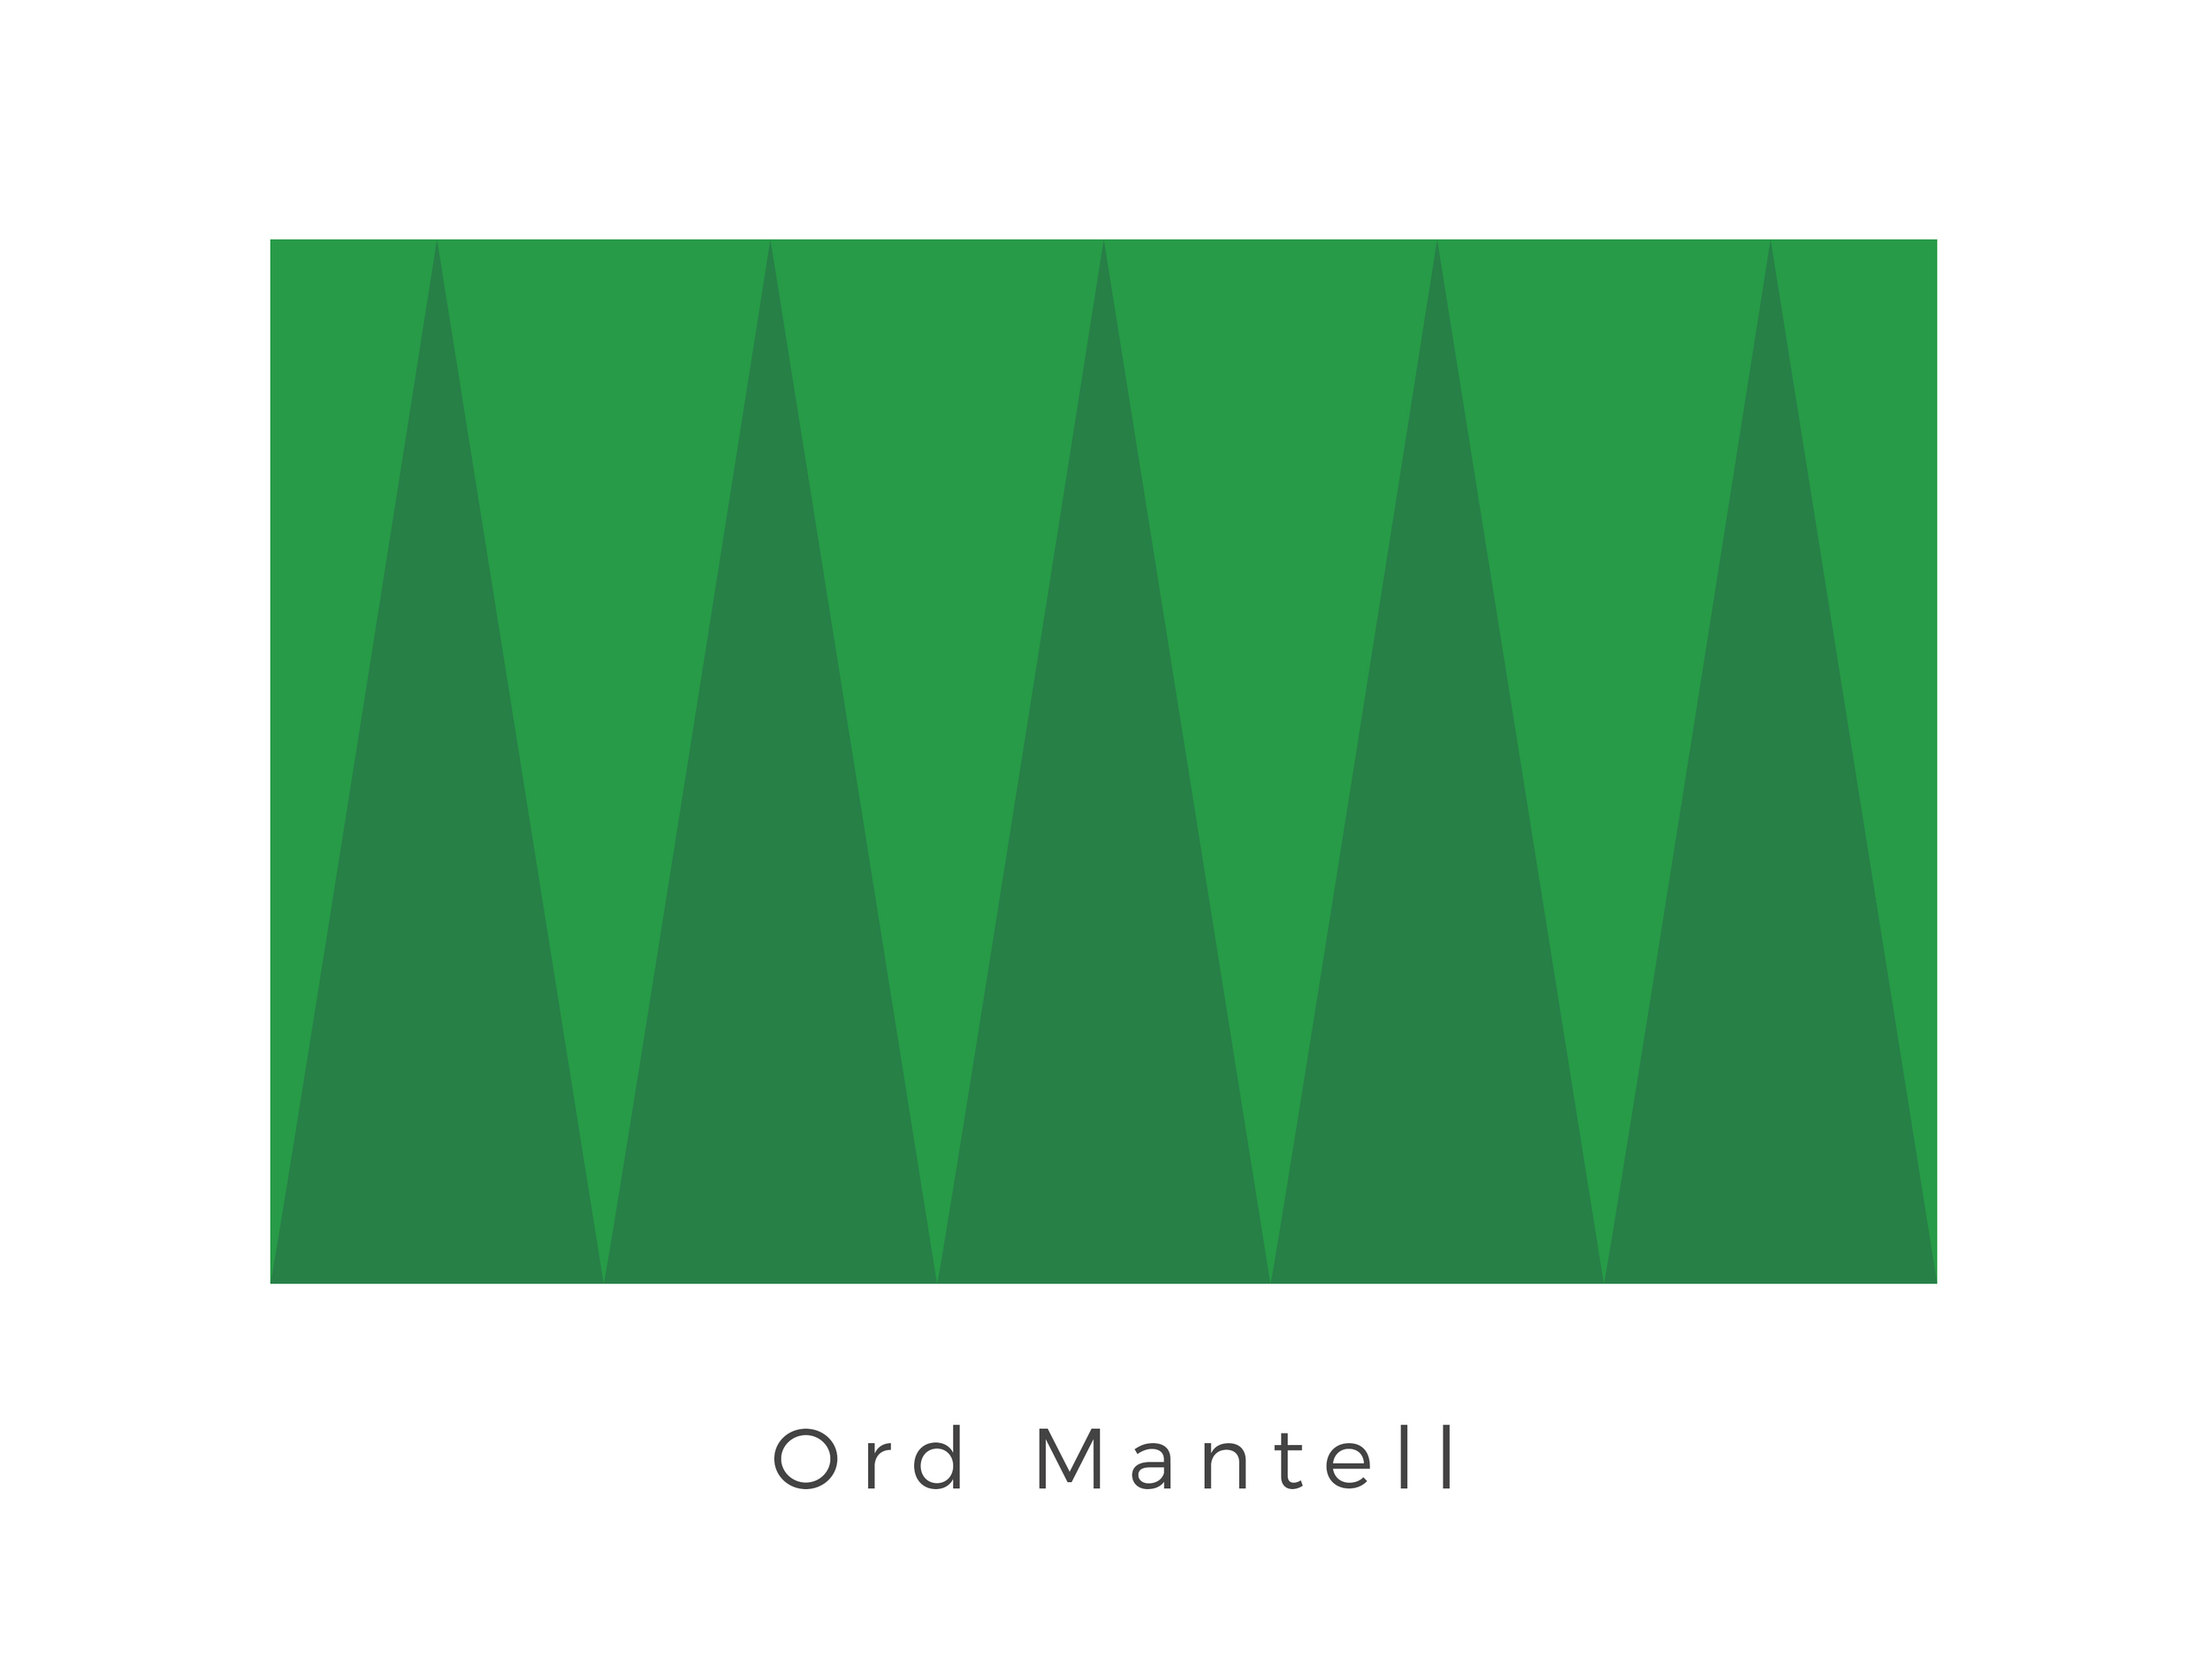 Ord Mantell  was a planet in the Bright Jewel Cluster. It was located near Anobis in the Mid Rim. It was originally settled in 12,000 BBY as an Ordnance/Regional Depot. Ord Mantell was originally inhabited by the primitive but sentient Mantellian Savrips, the zig zag nature of the flag is taken from early carvings by the Mantellian Savrips, while the green colours represent the bountiful resources of the planet,